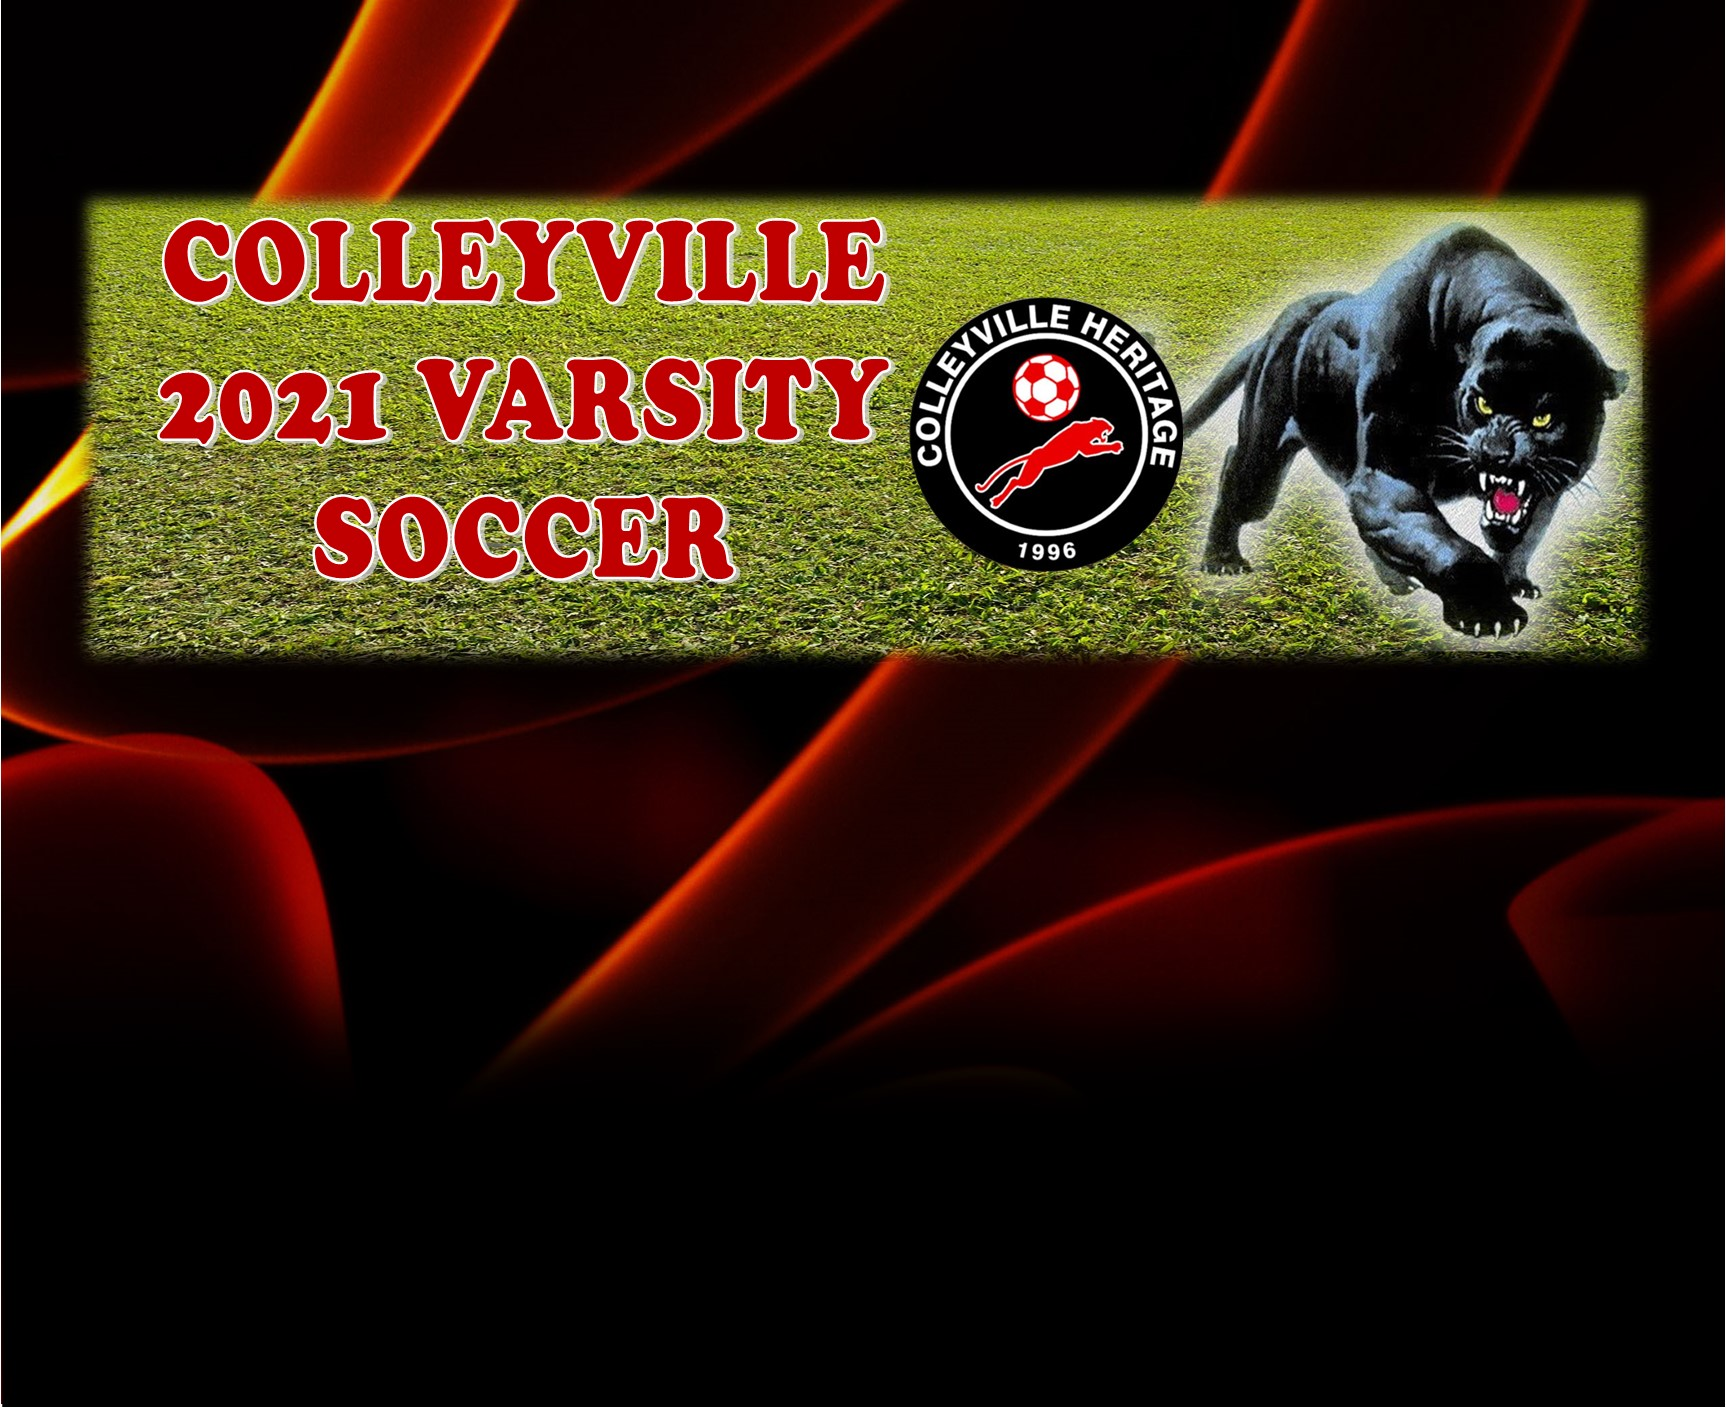 GCISD Soccer: Colleyville Panthers Shut Down Wichita Falls Coyotes 2-1 to Win Regional Quarterfinals Championship